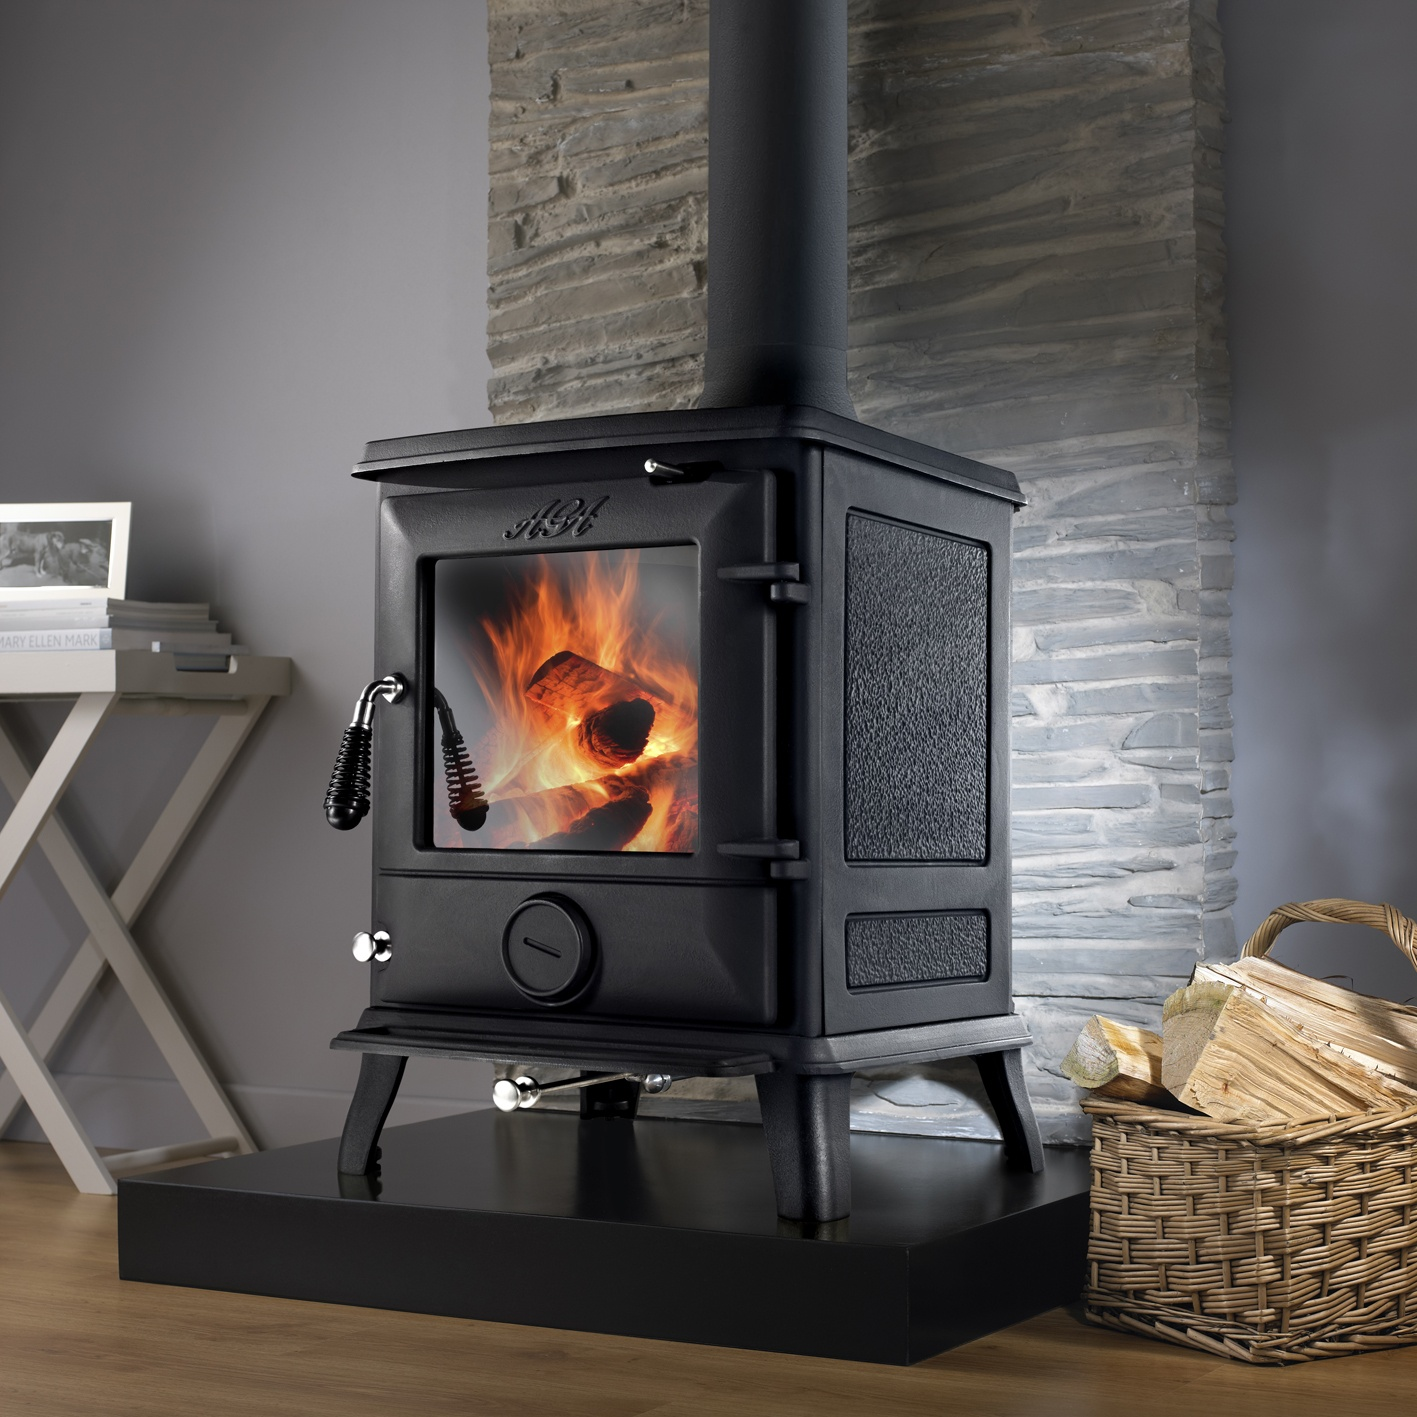 AGA Wood Burners